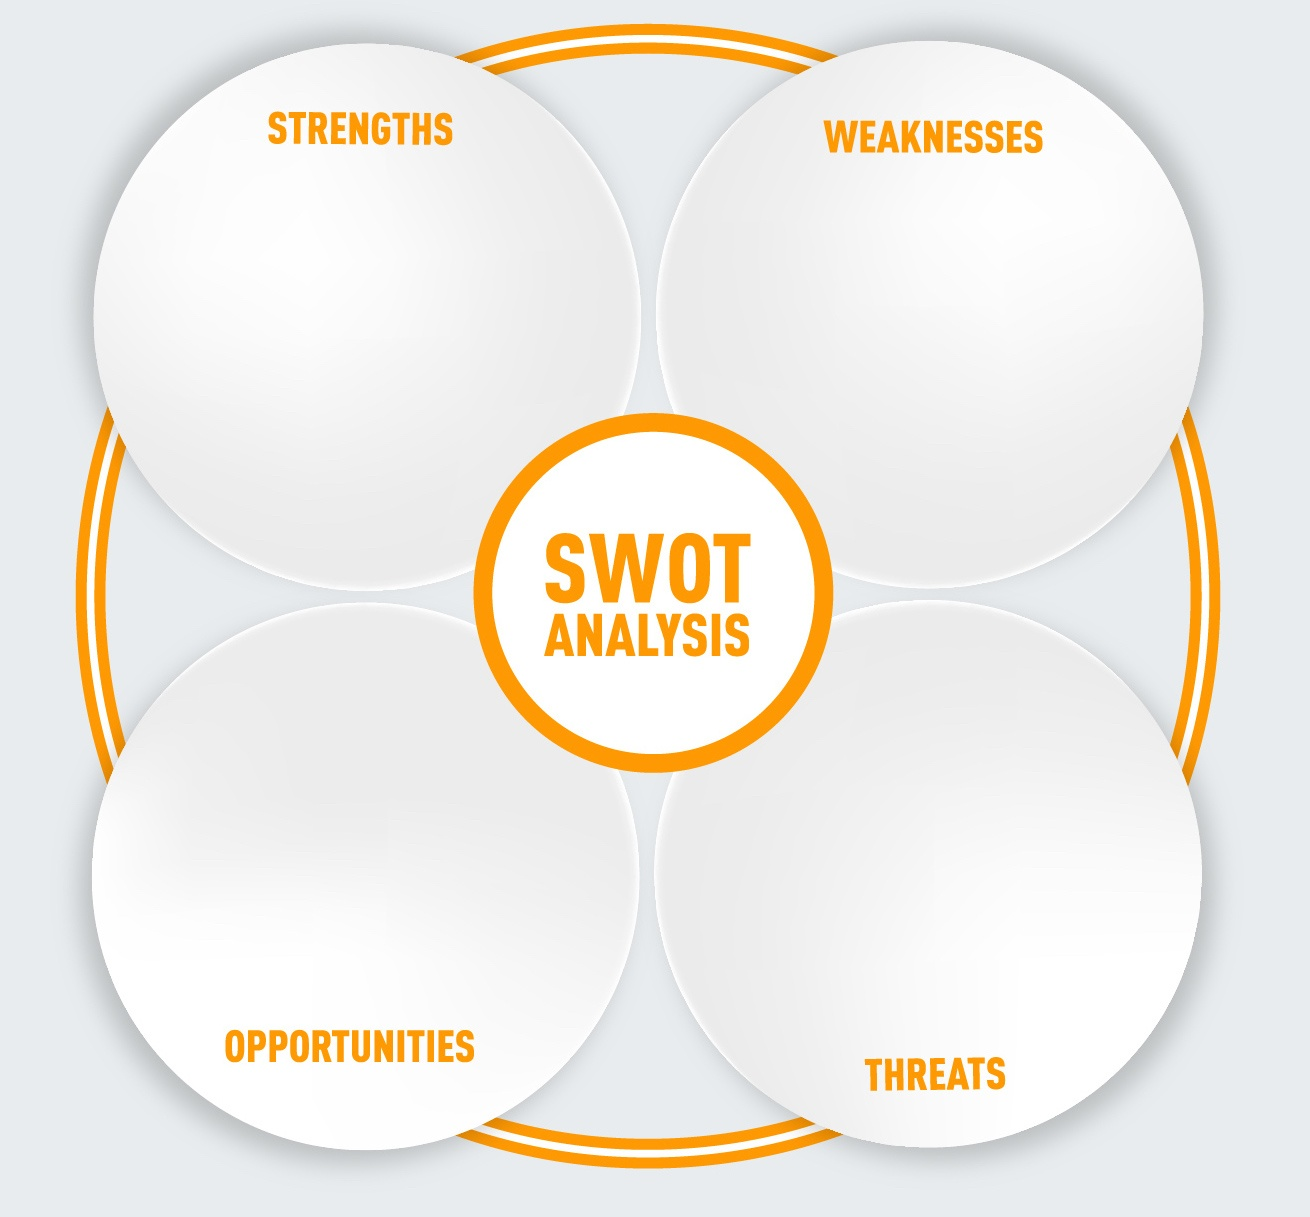 analyse swot exemple.jpg